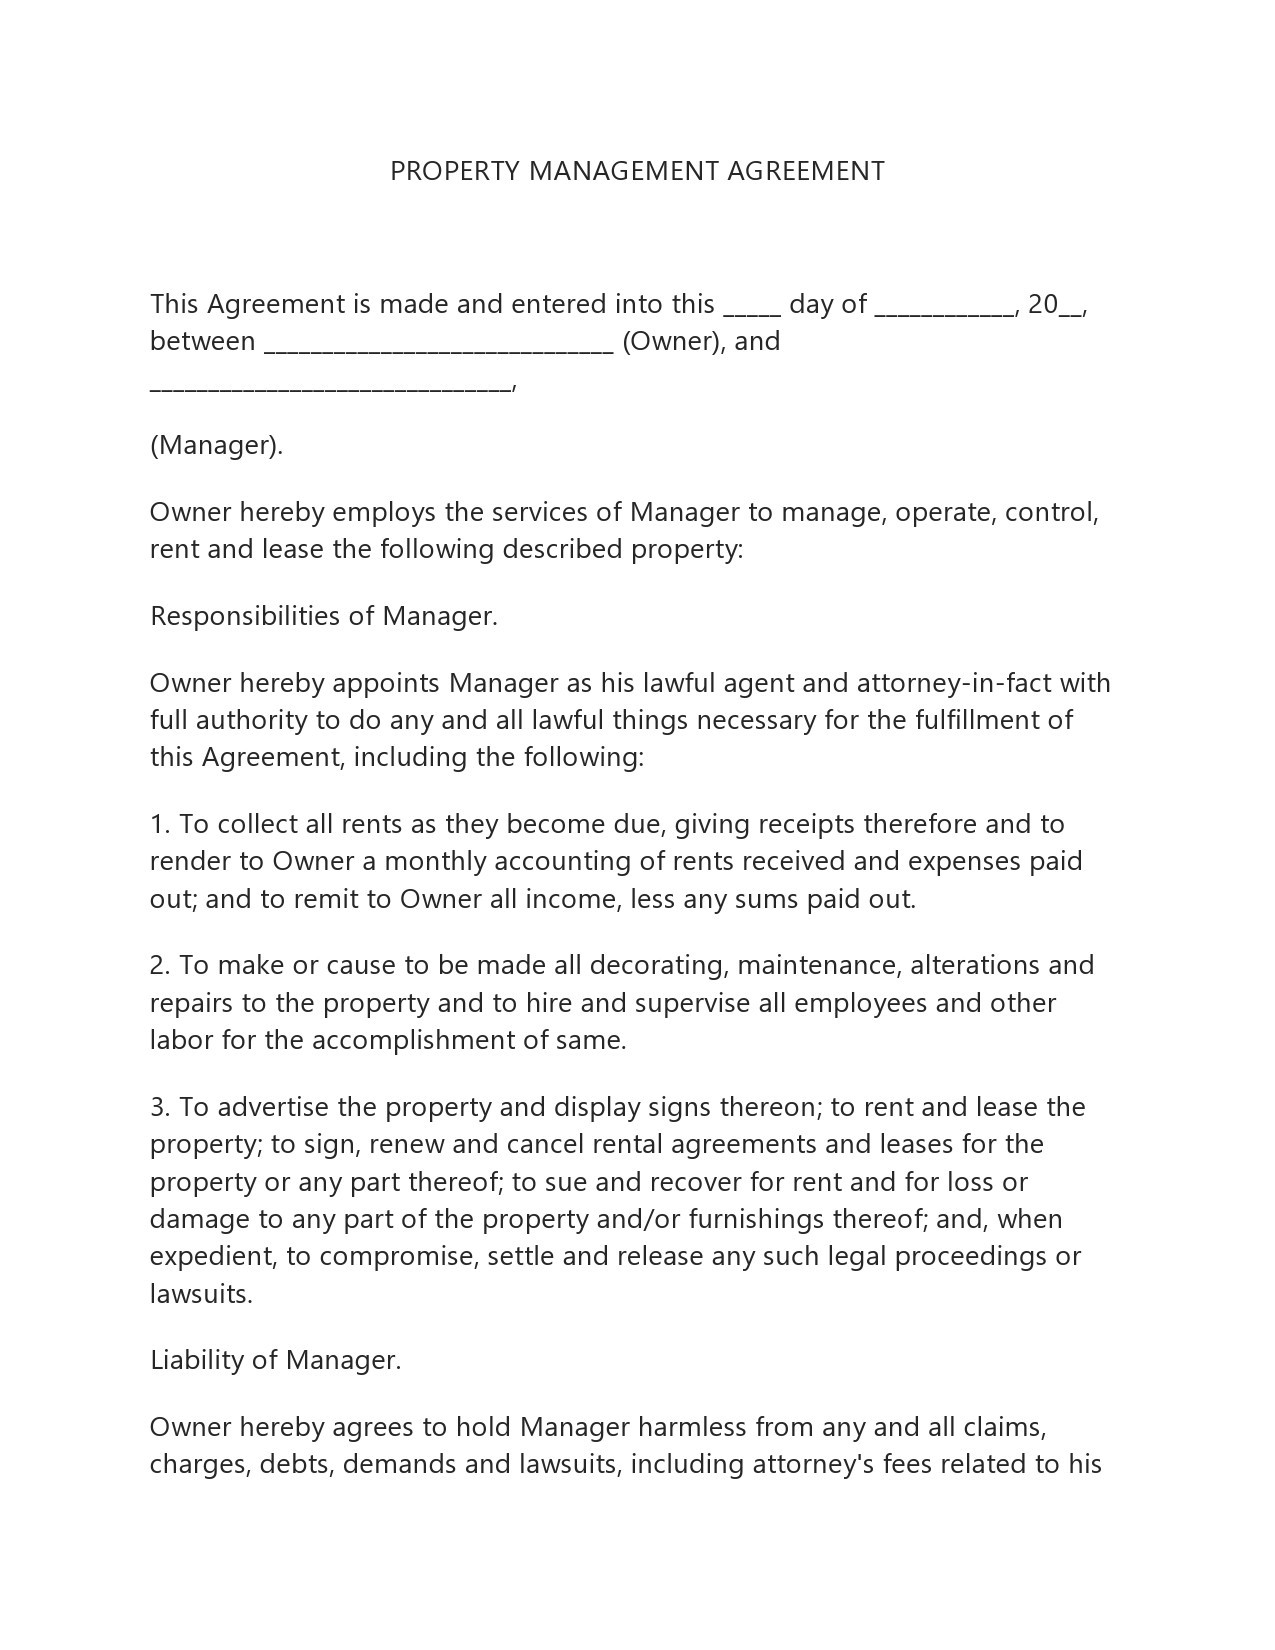 Free property management agreement 18